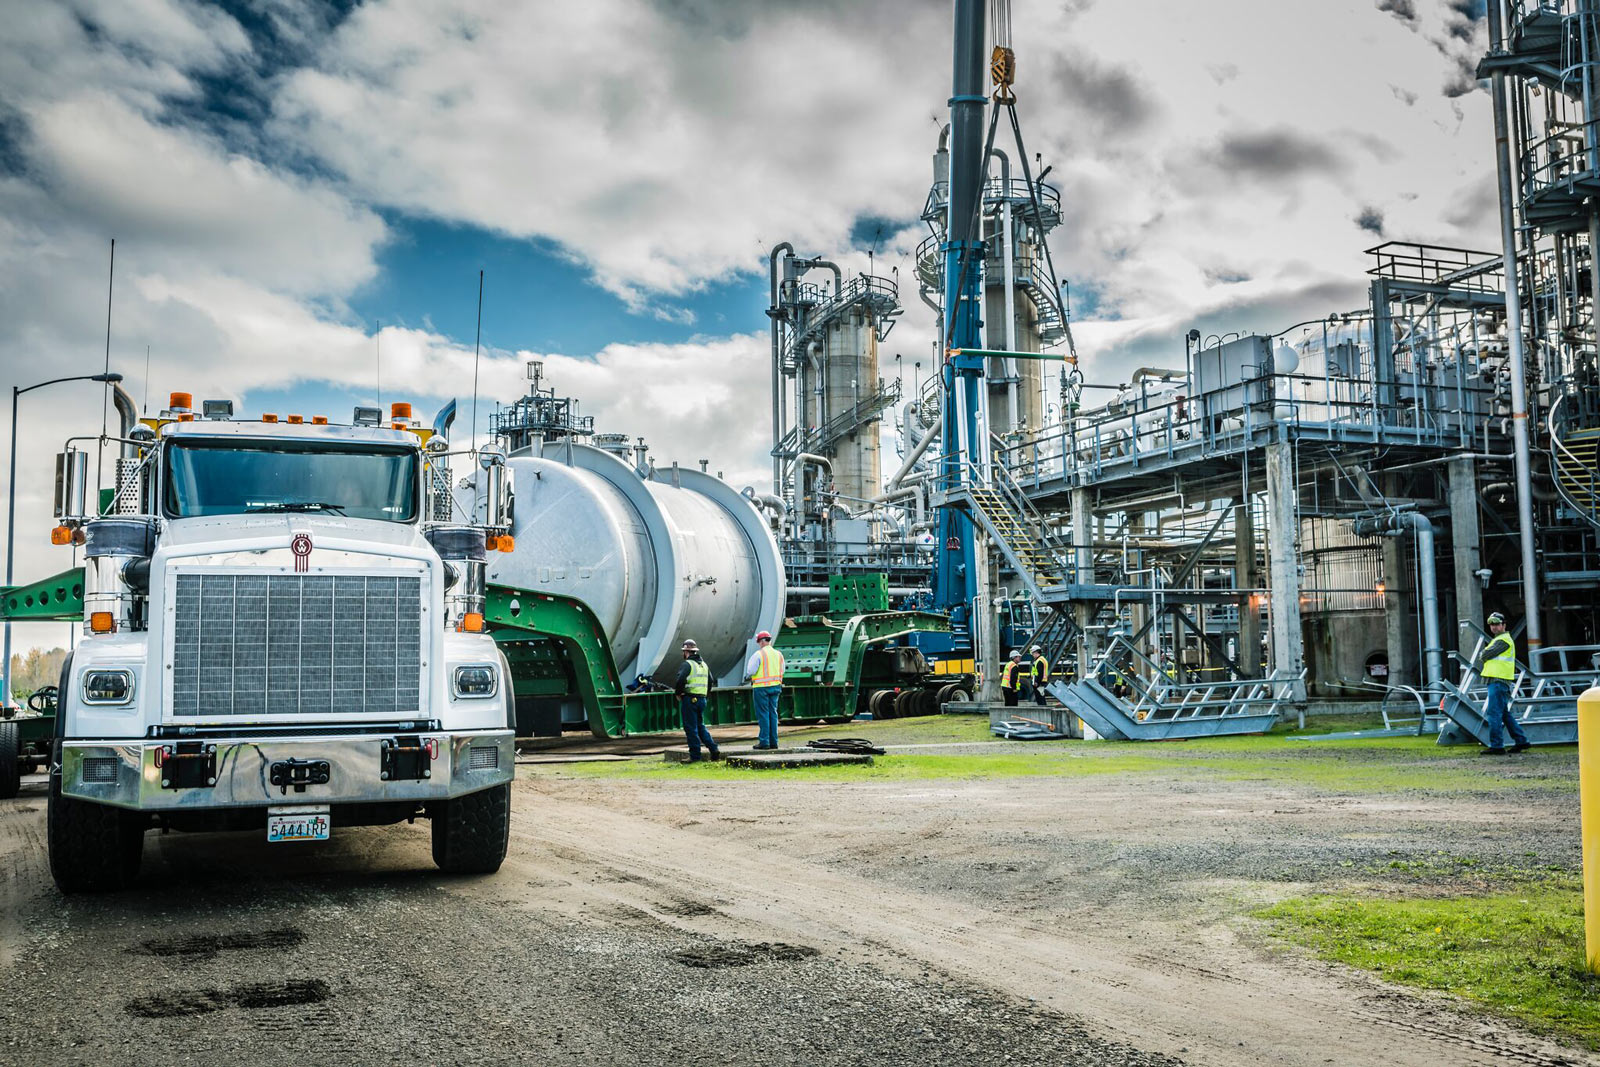 truck with trailer holding vessel at chemical plant in Longview, washington